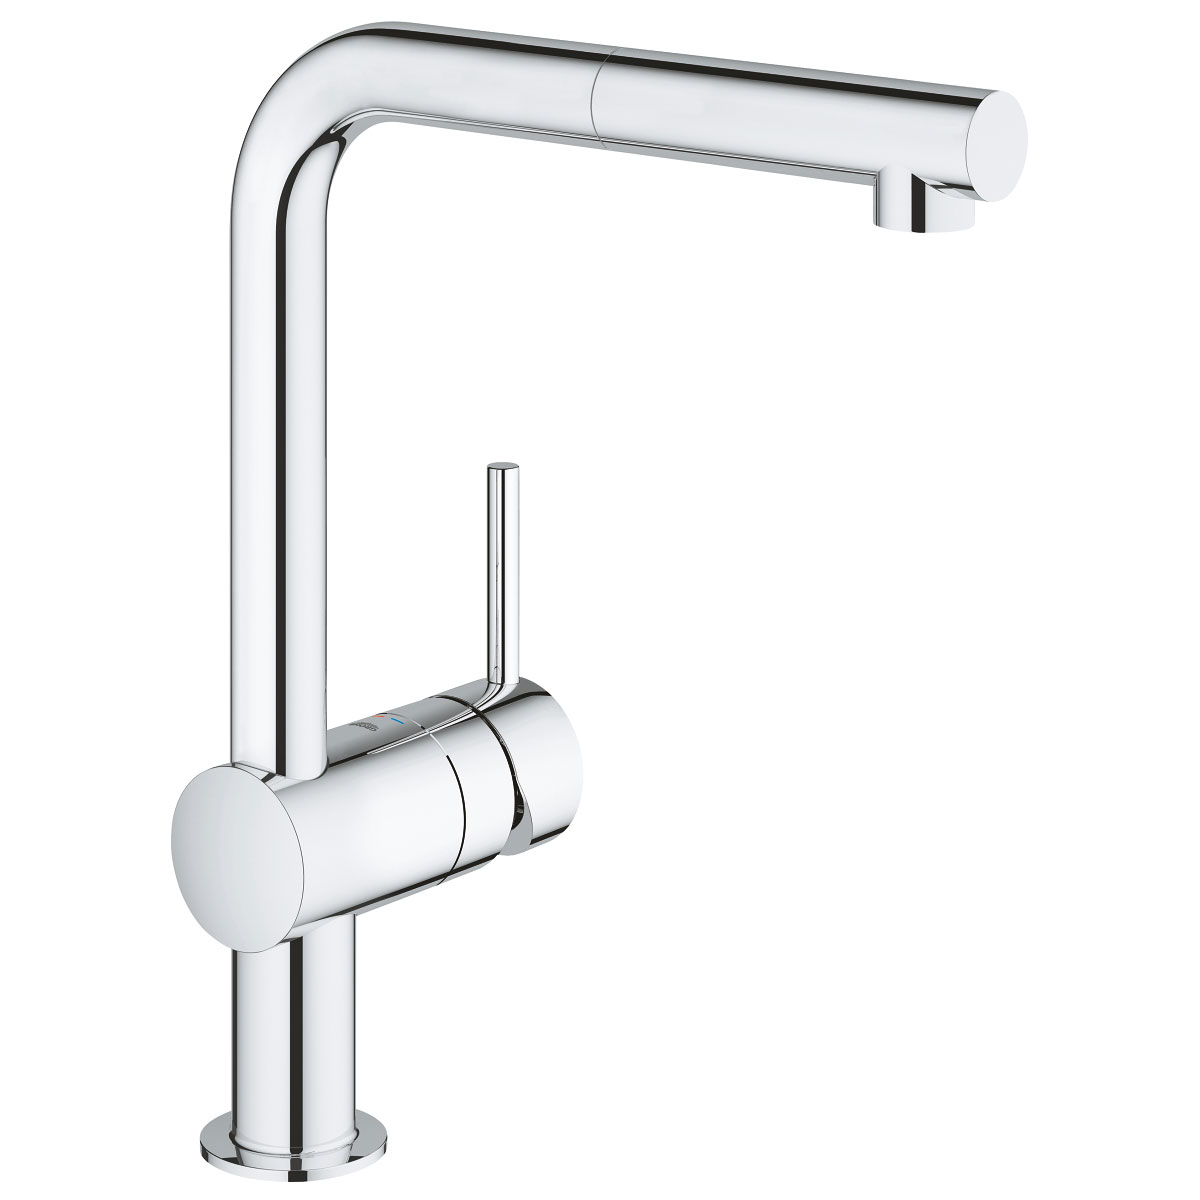 Grohe Minta Sink Mixer 32321000 Deck Mounted Chrome